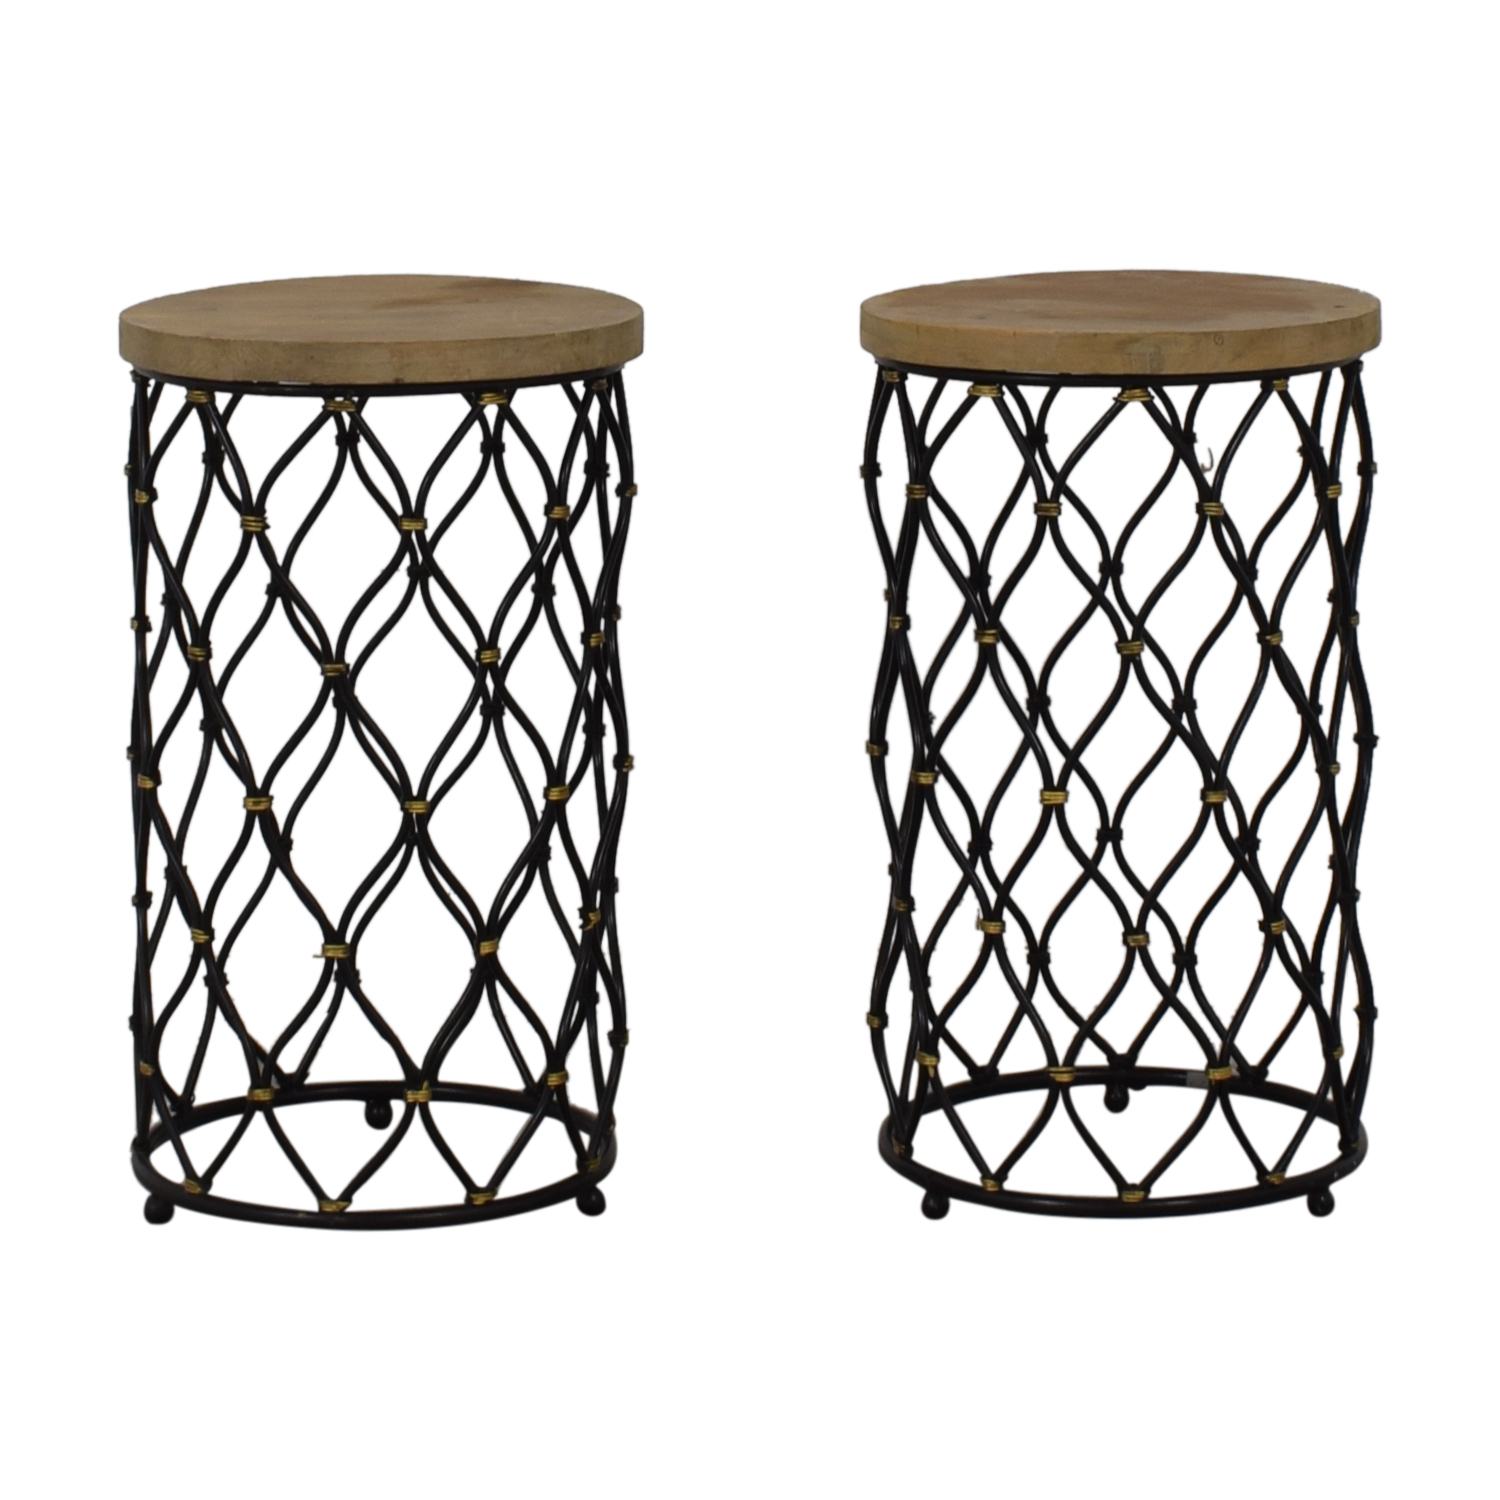 Coast to Coast Imports Coast to Coast Imports Lattice Round Wood and Metal Stools Tables